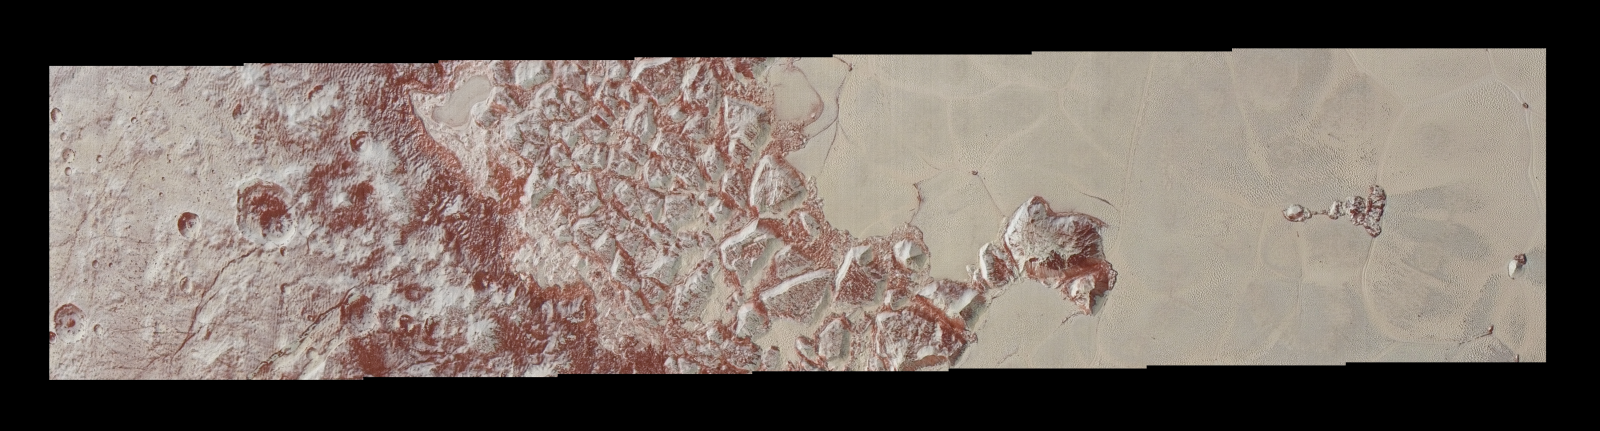 High-resolution images of Pluto taken by NASA's New Horizons spacecraft just before closest approach on July 14, 2015, reveal features, including dunes, as small as 270 yards or 250 meters across, from craters to faulted mountain blocks, to the textured surface of the vast basin called Sputnik Planitia. Enhanced color has been added from the global color image. This image is about 330 miles (530 kilometers) across. Image Credit: NASA/JHUAPL/SWRI